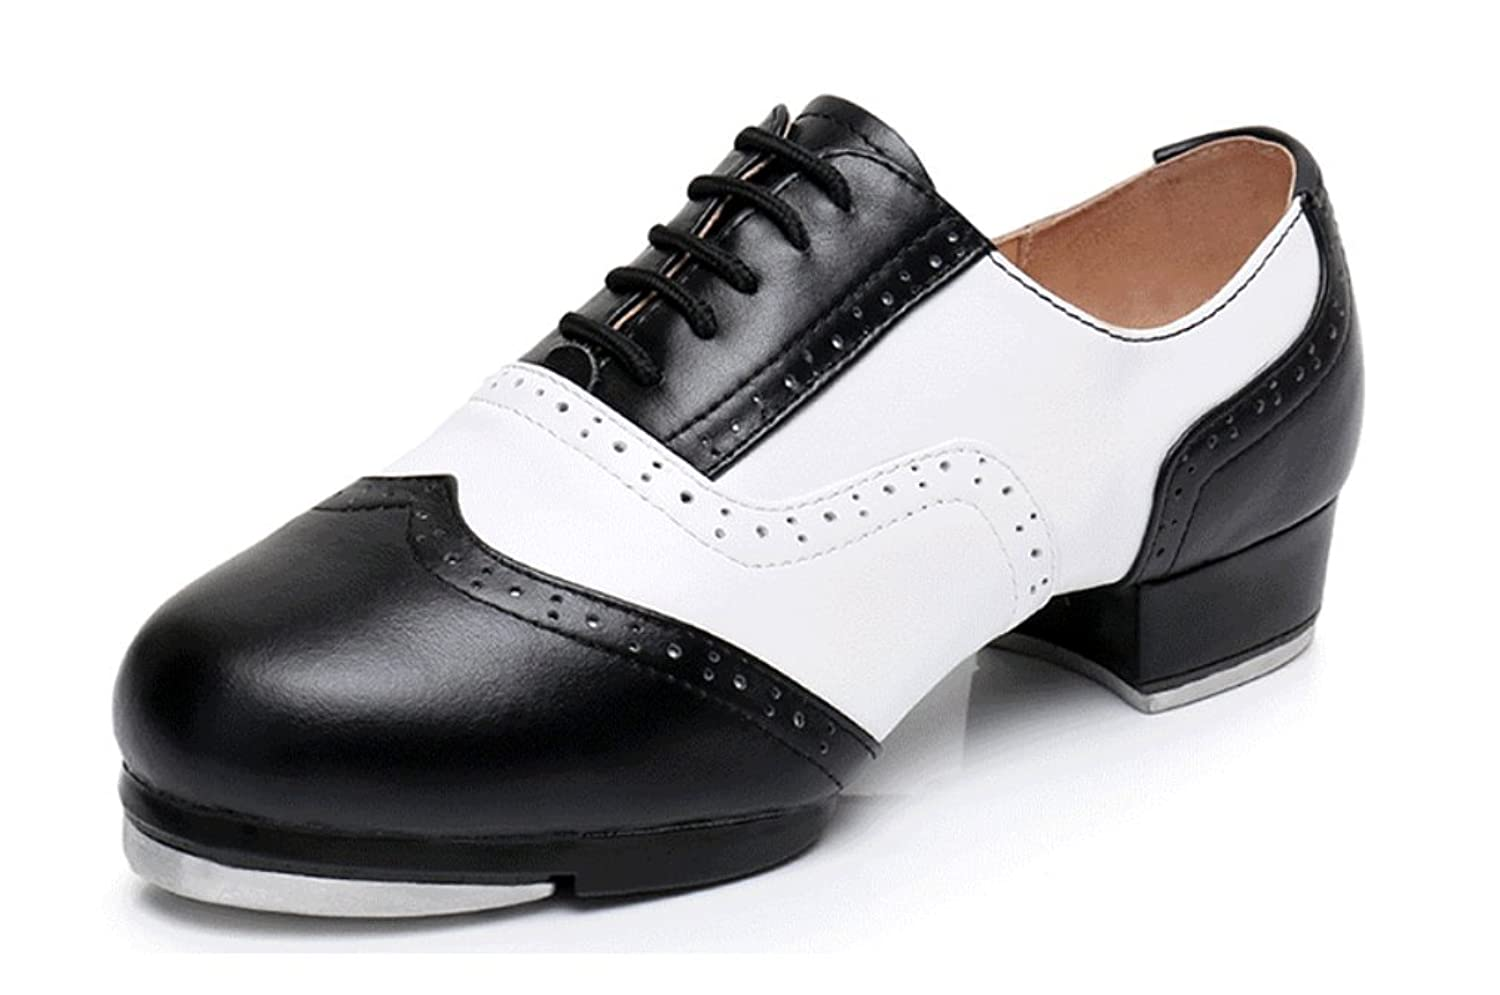 Gogodance Genuine Leather Adults Men Women International Black and White Tap Dance Shoes Size US 4.5-13 B07827YGPF 9.5 US / Foot Length 10.43